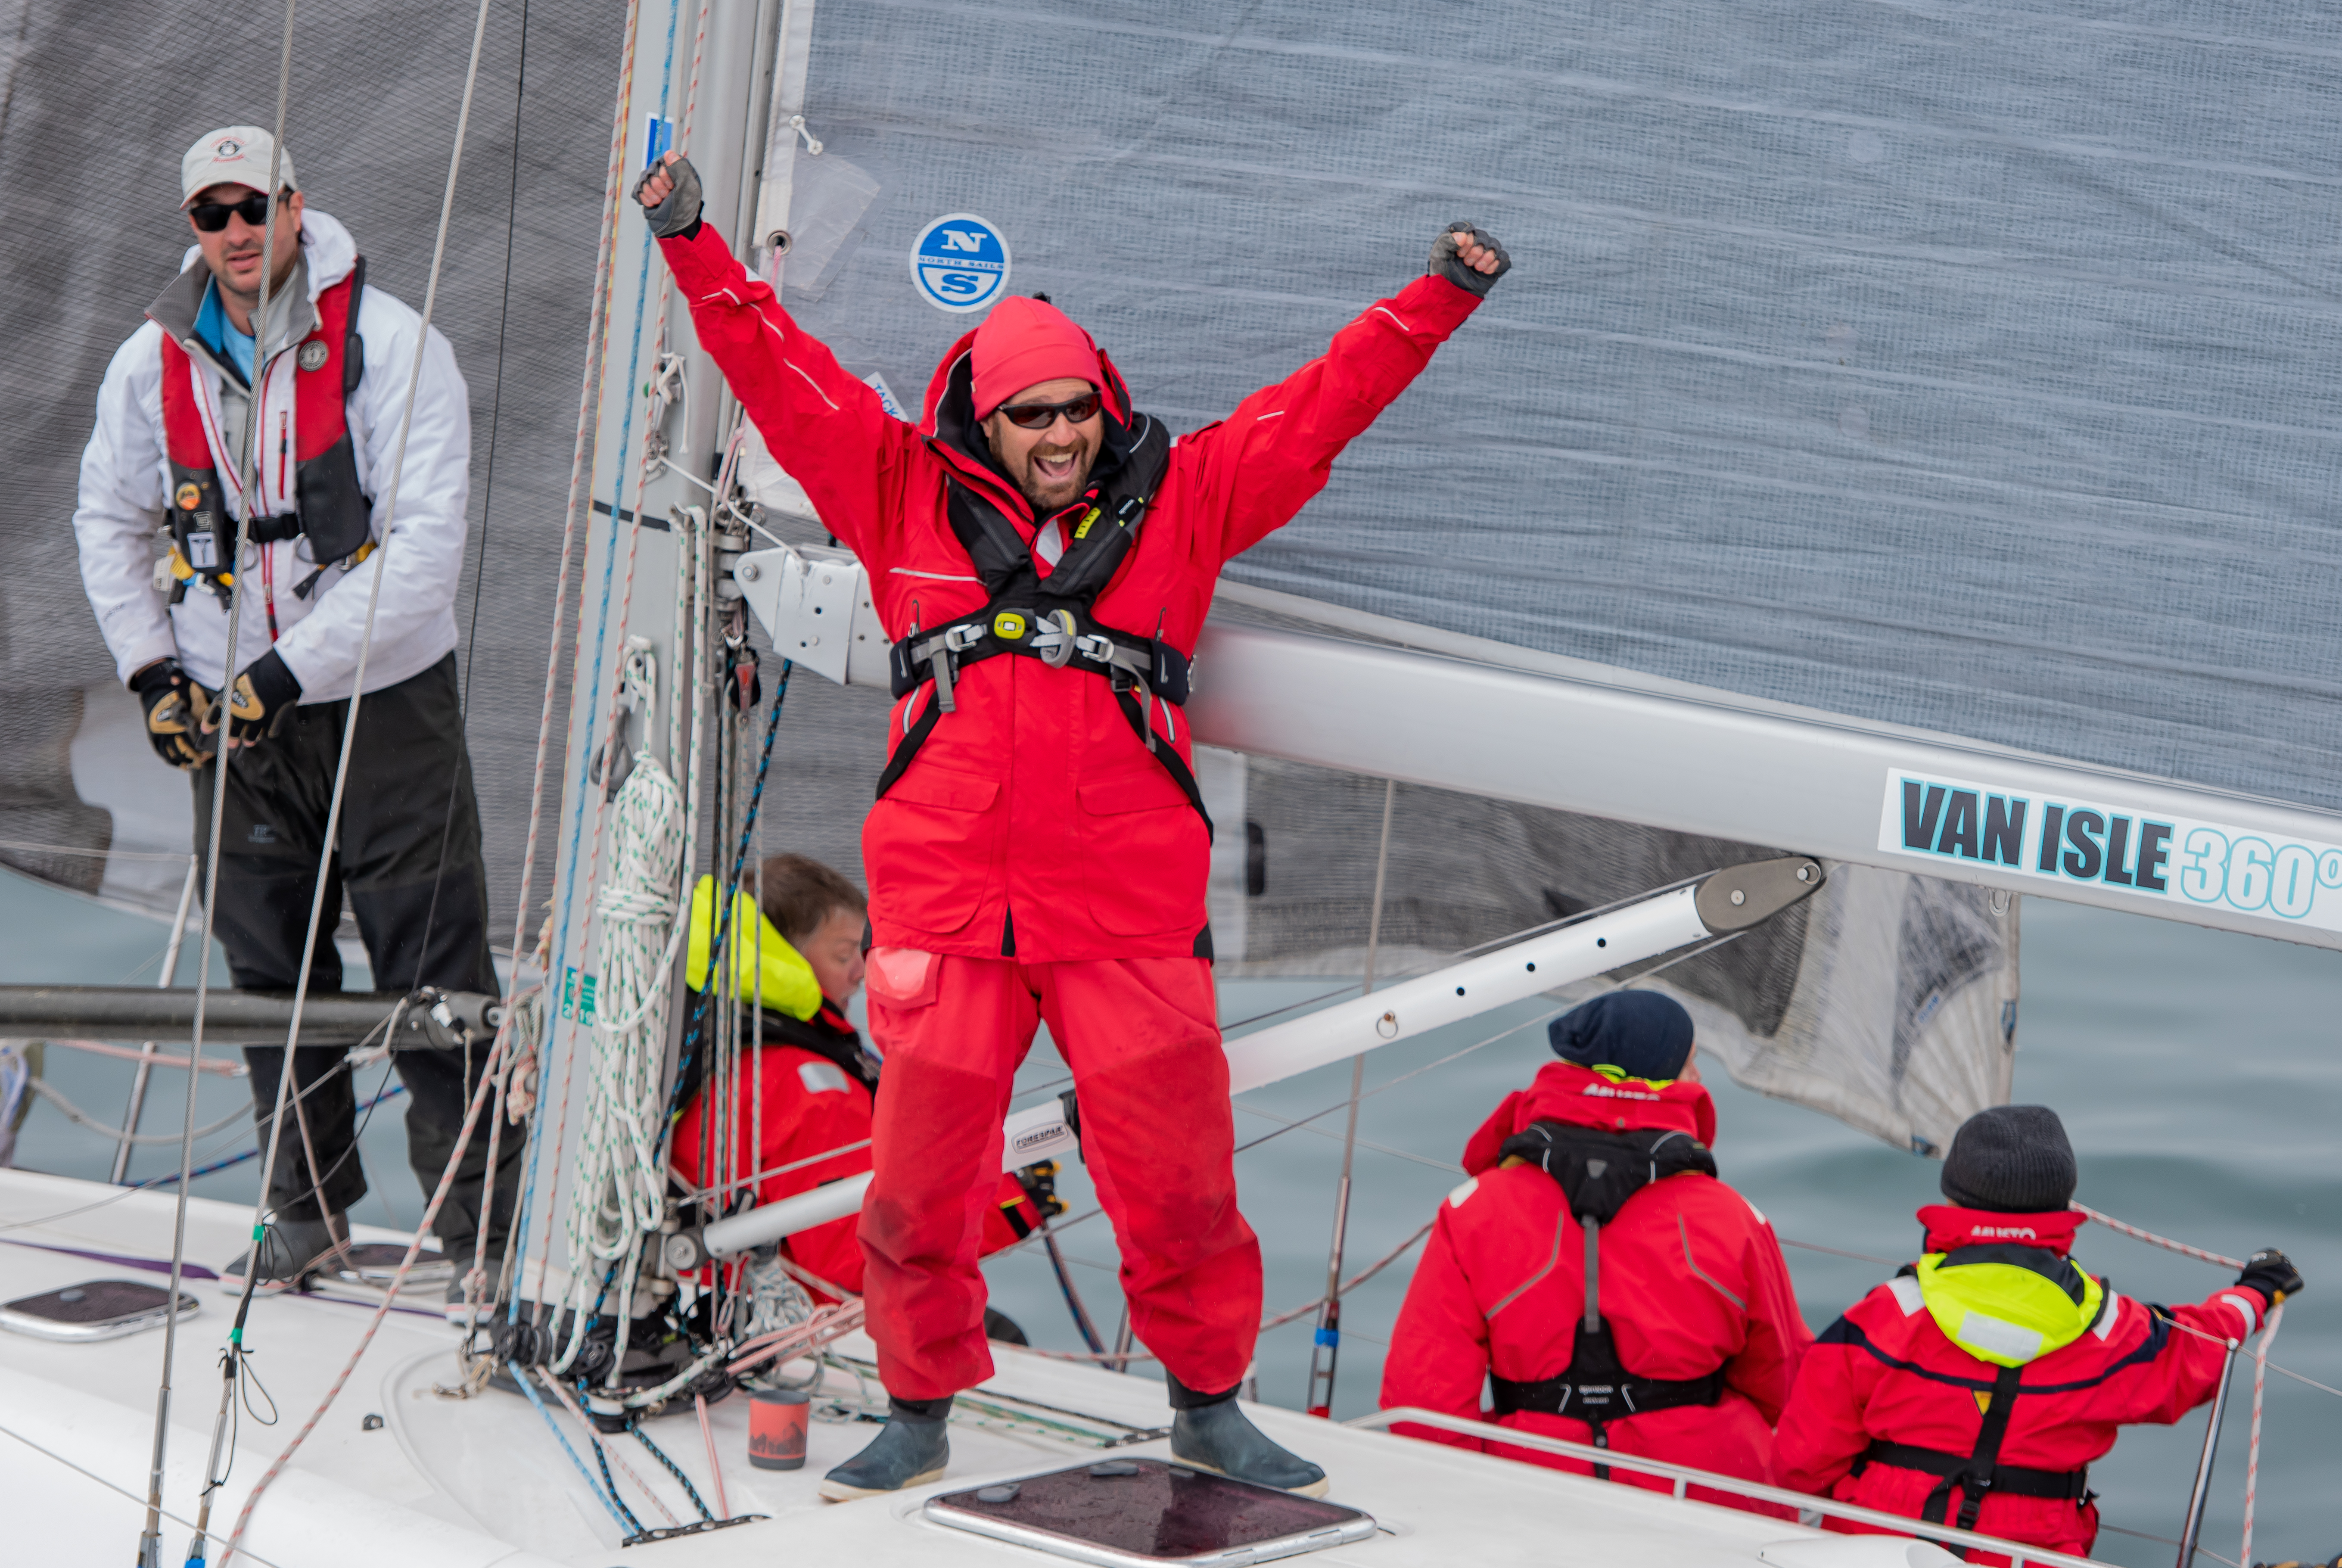 Swiftsure-25-May-2019-RMS-Media-by-Rob-Porter-63